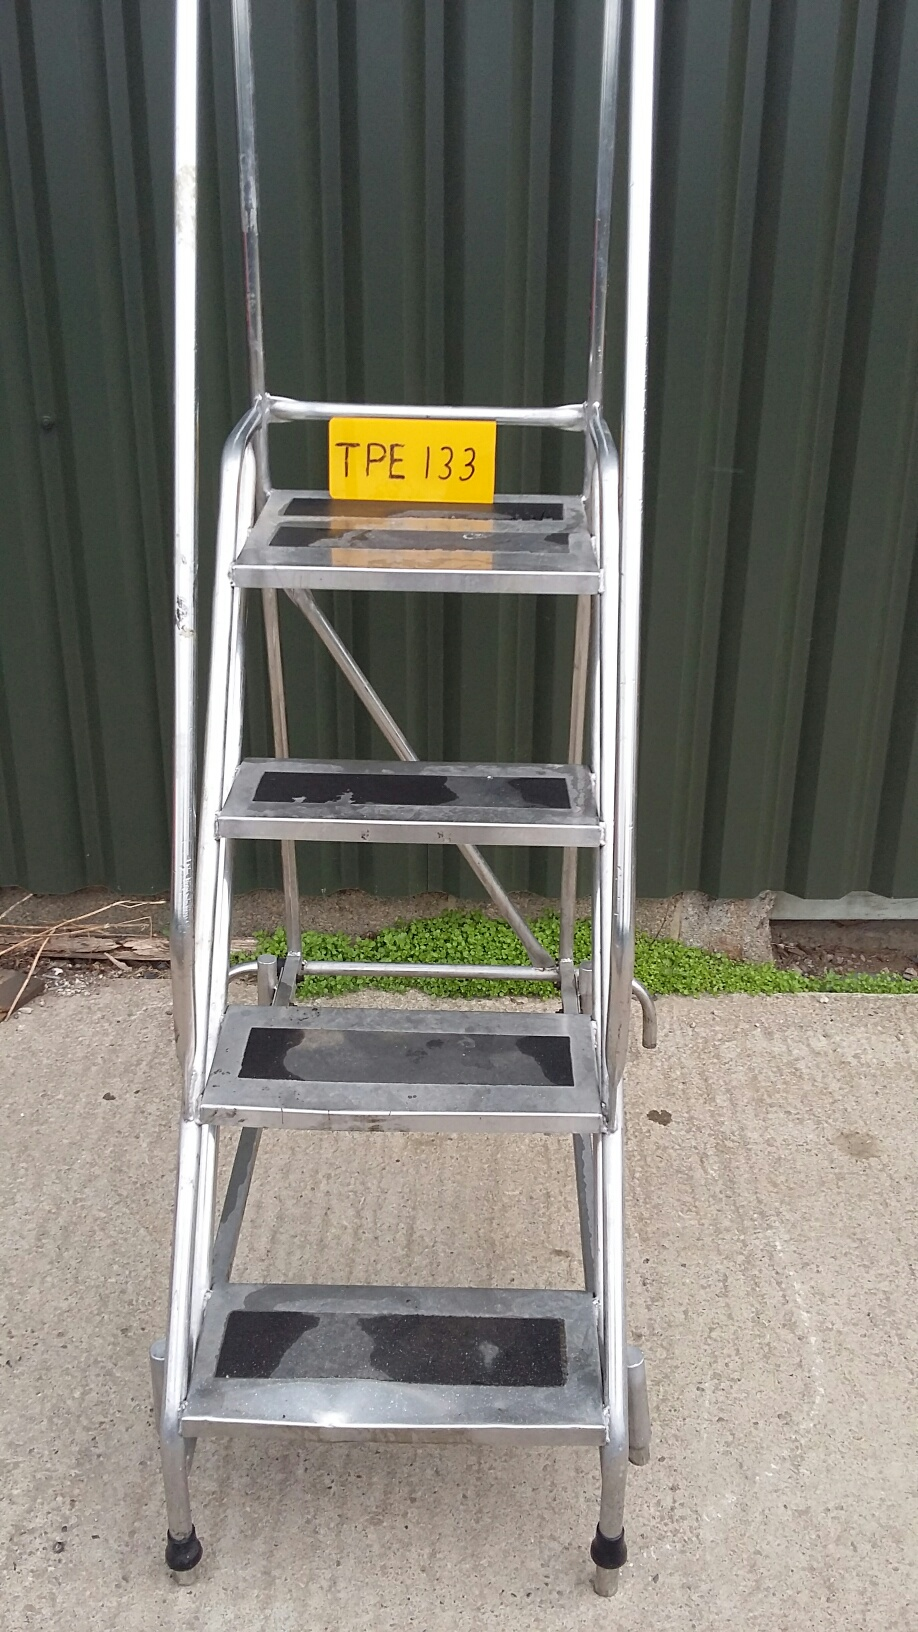 Stainless Steel Four Tread Mobile Staircase, With Safety Handles, Serial  No. Unknown, Plant No. N/a, Year Of Manufacture Unknown, Dimensions Approx.